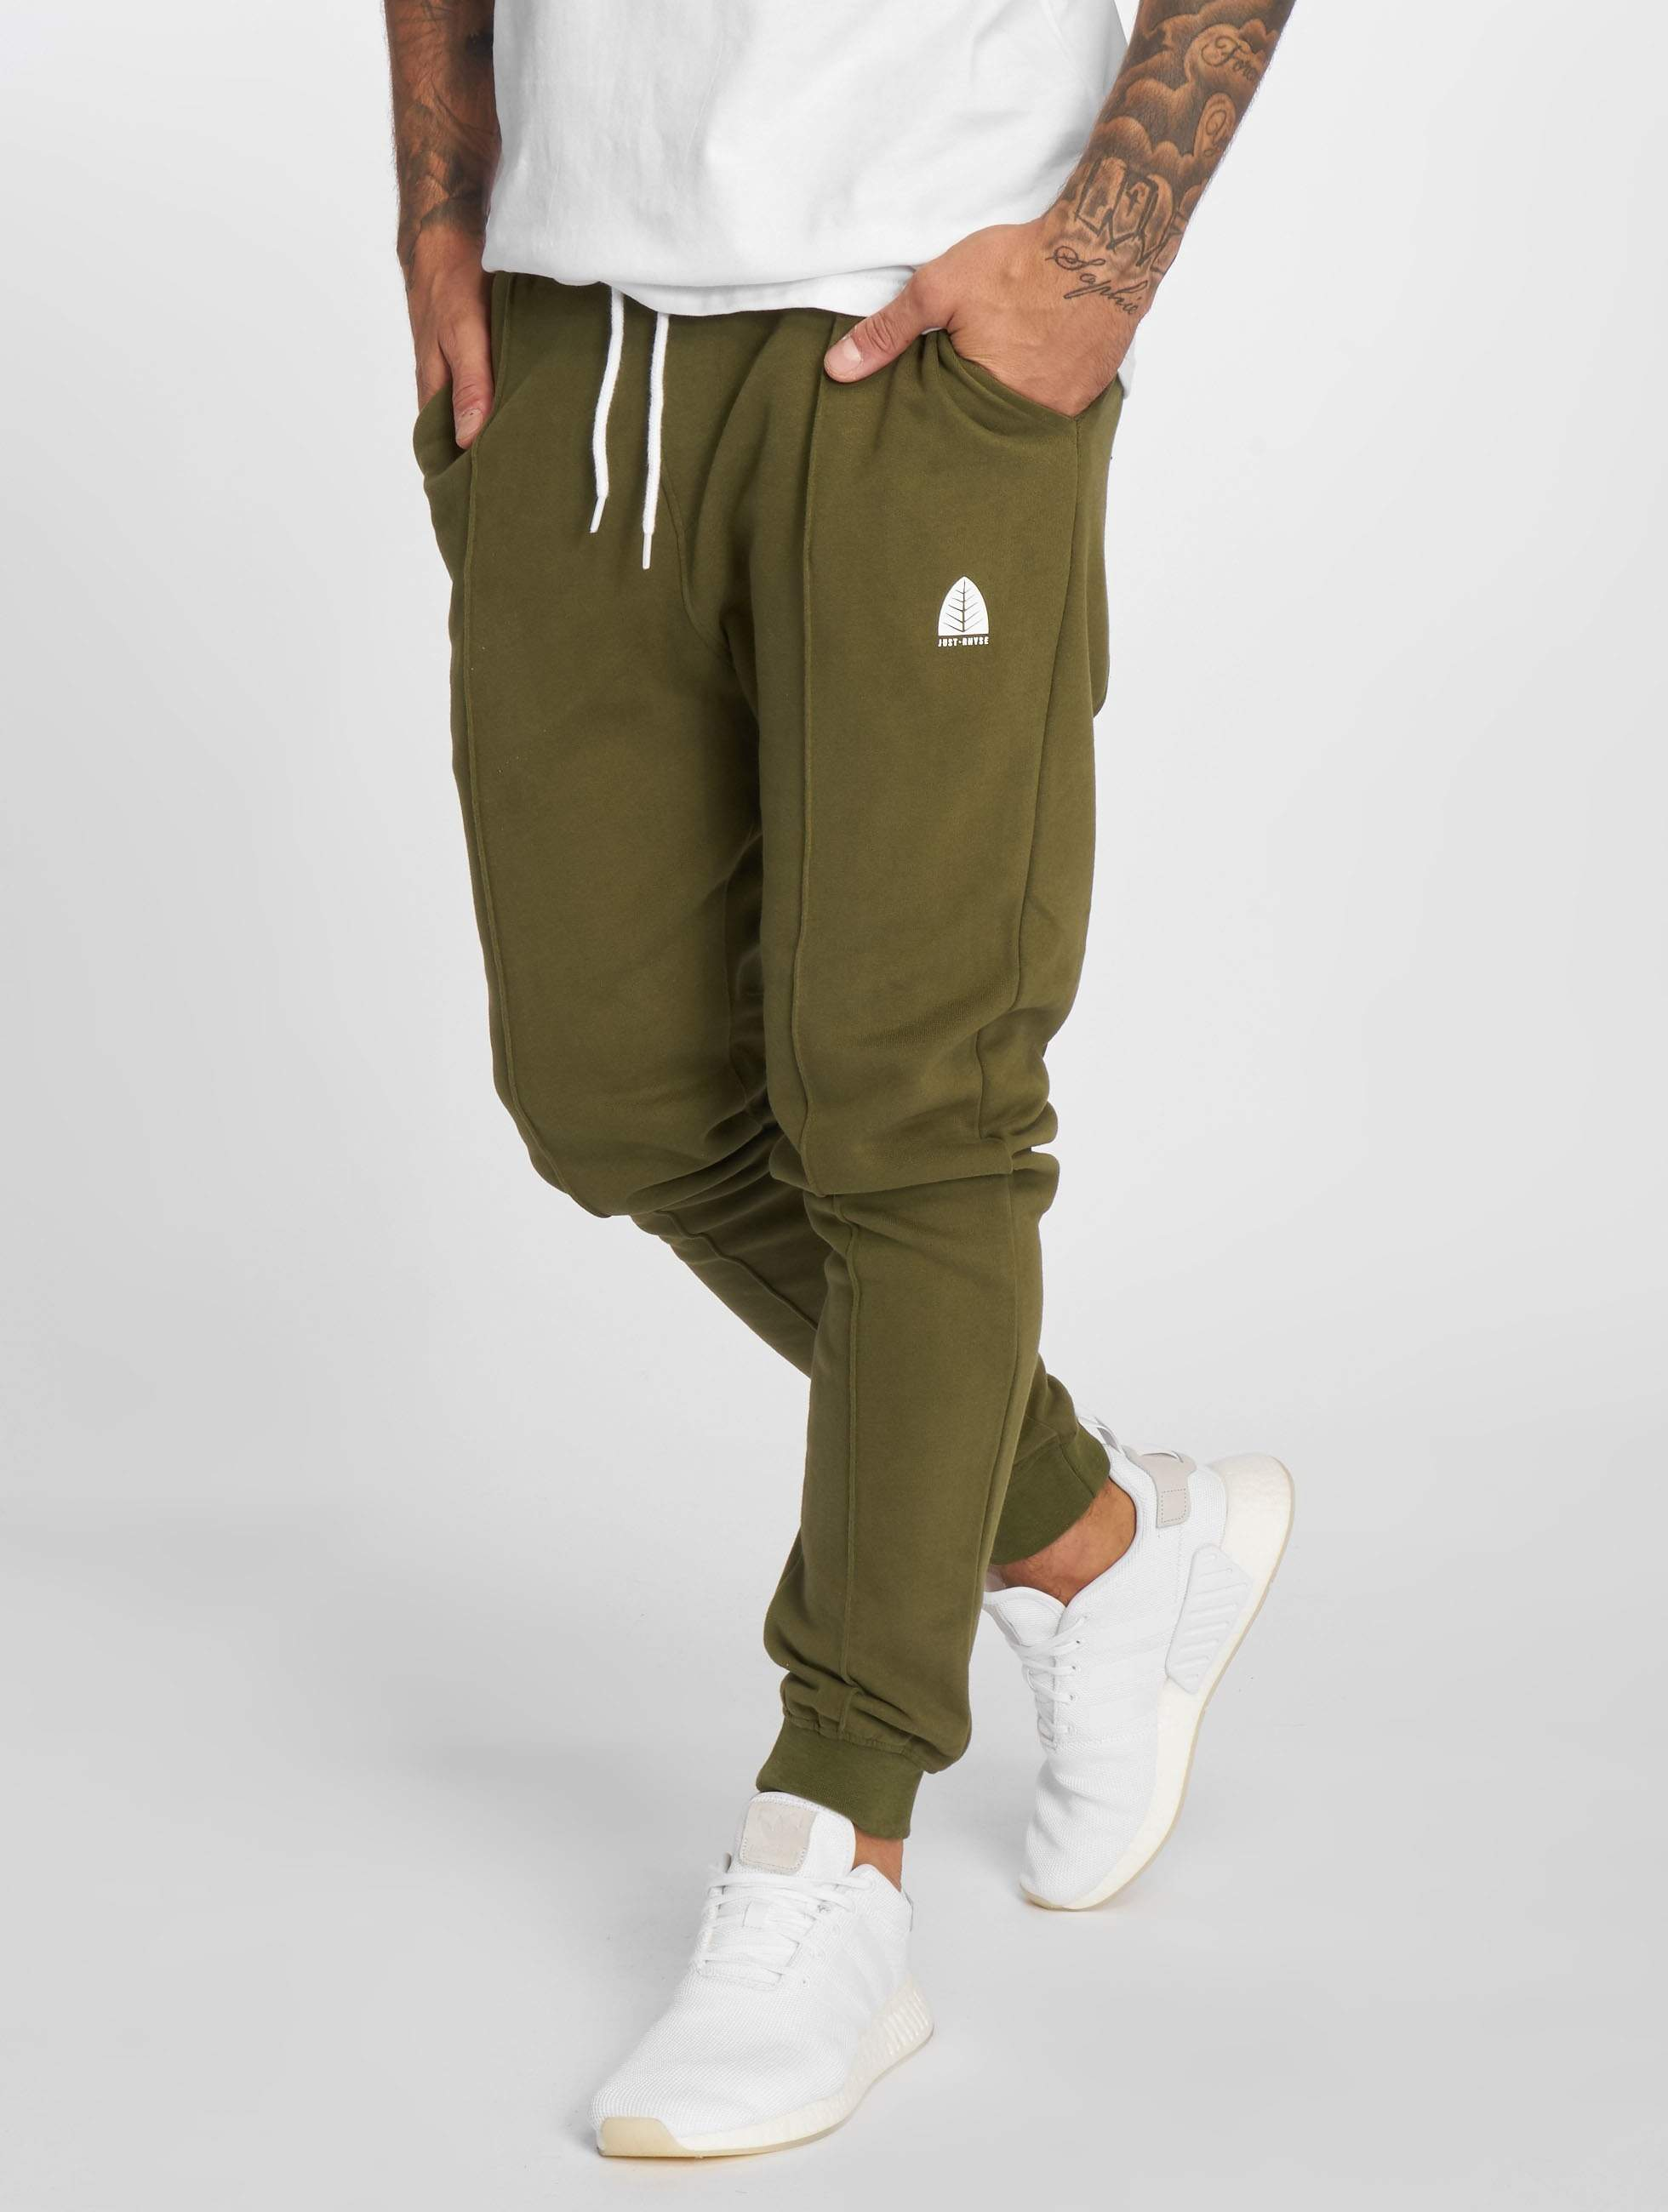 Just Rhyse / Sweat Pant Tongras in olive XL